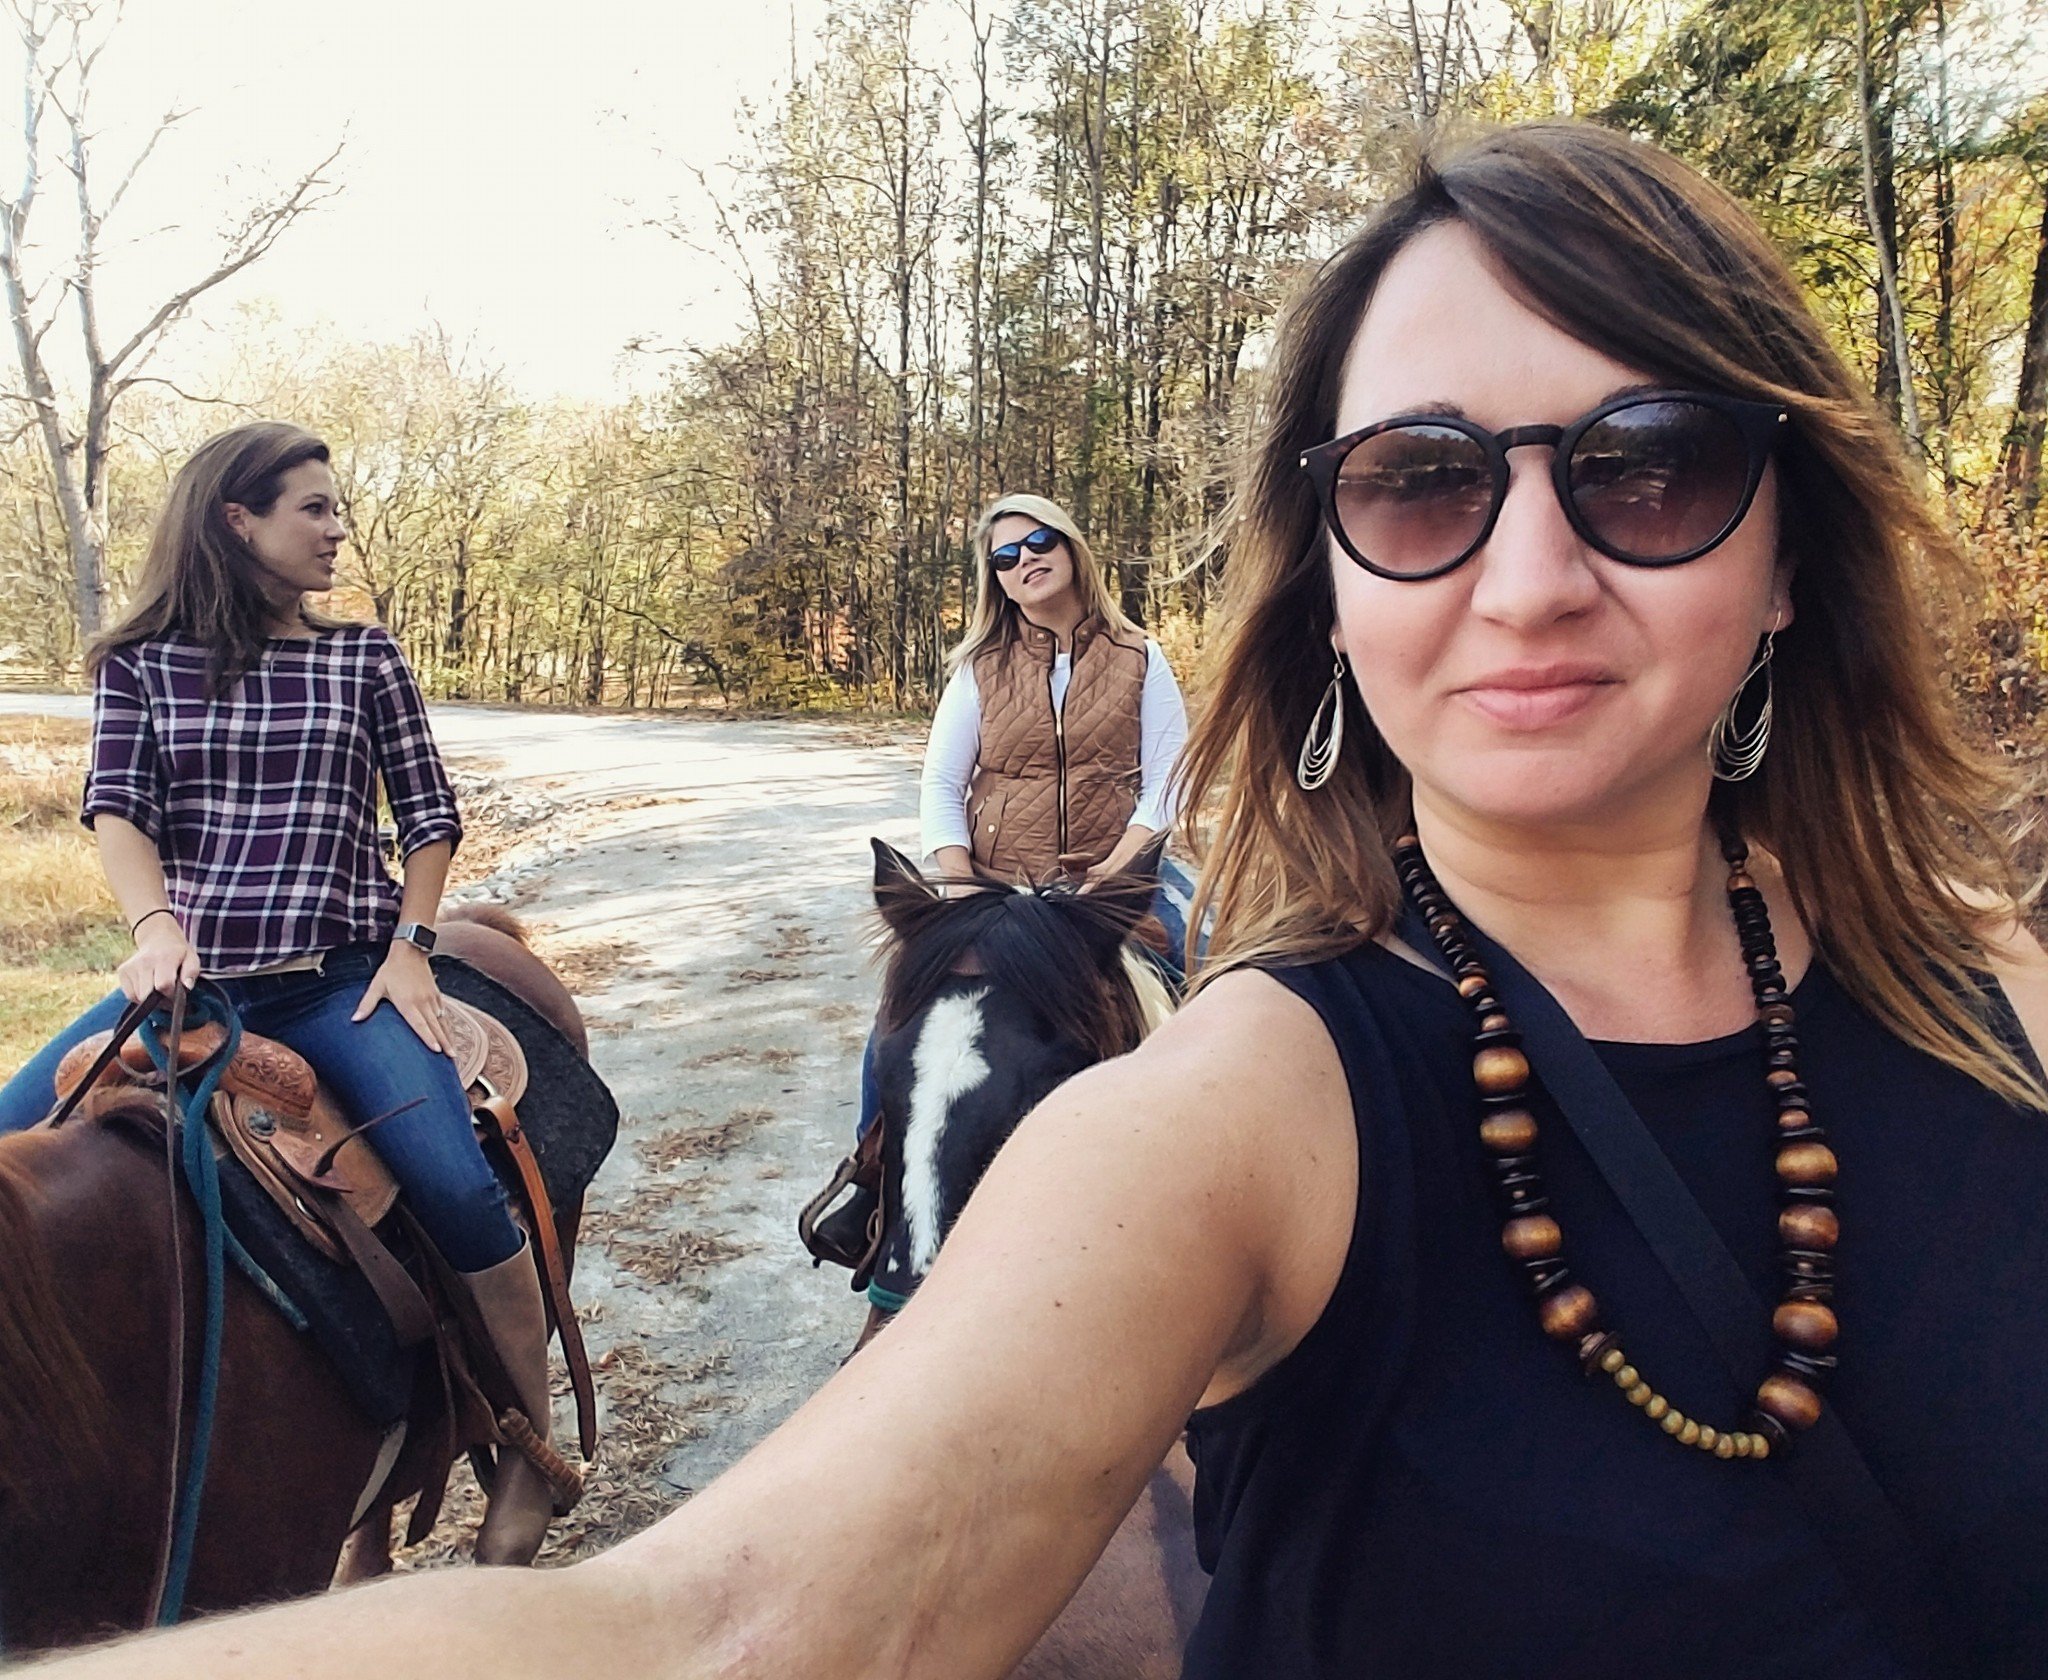 Horseback-riding-nashville